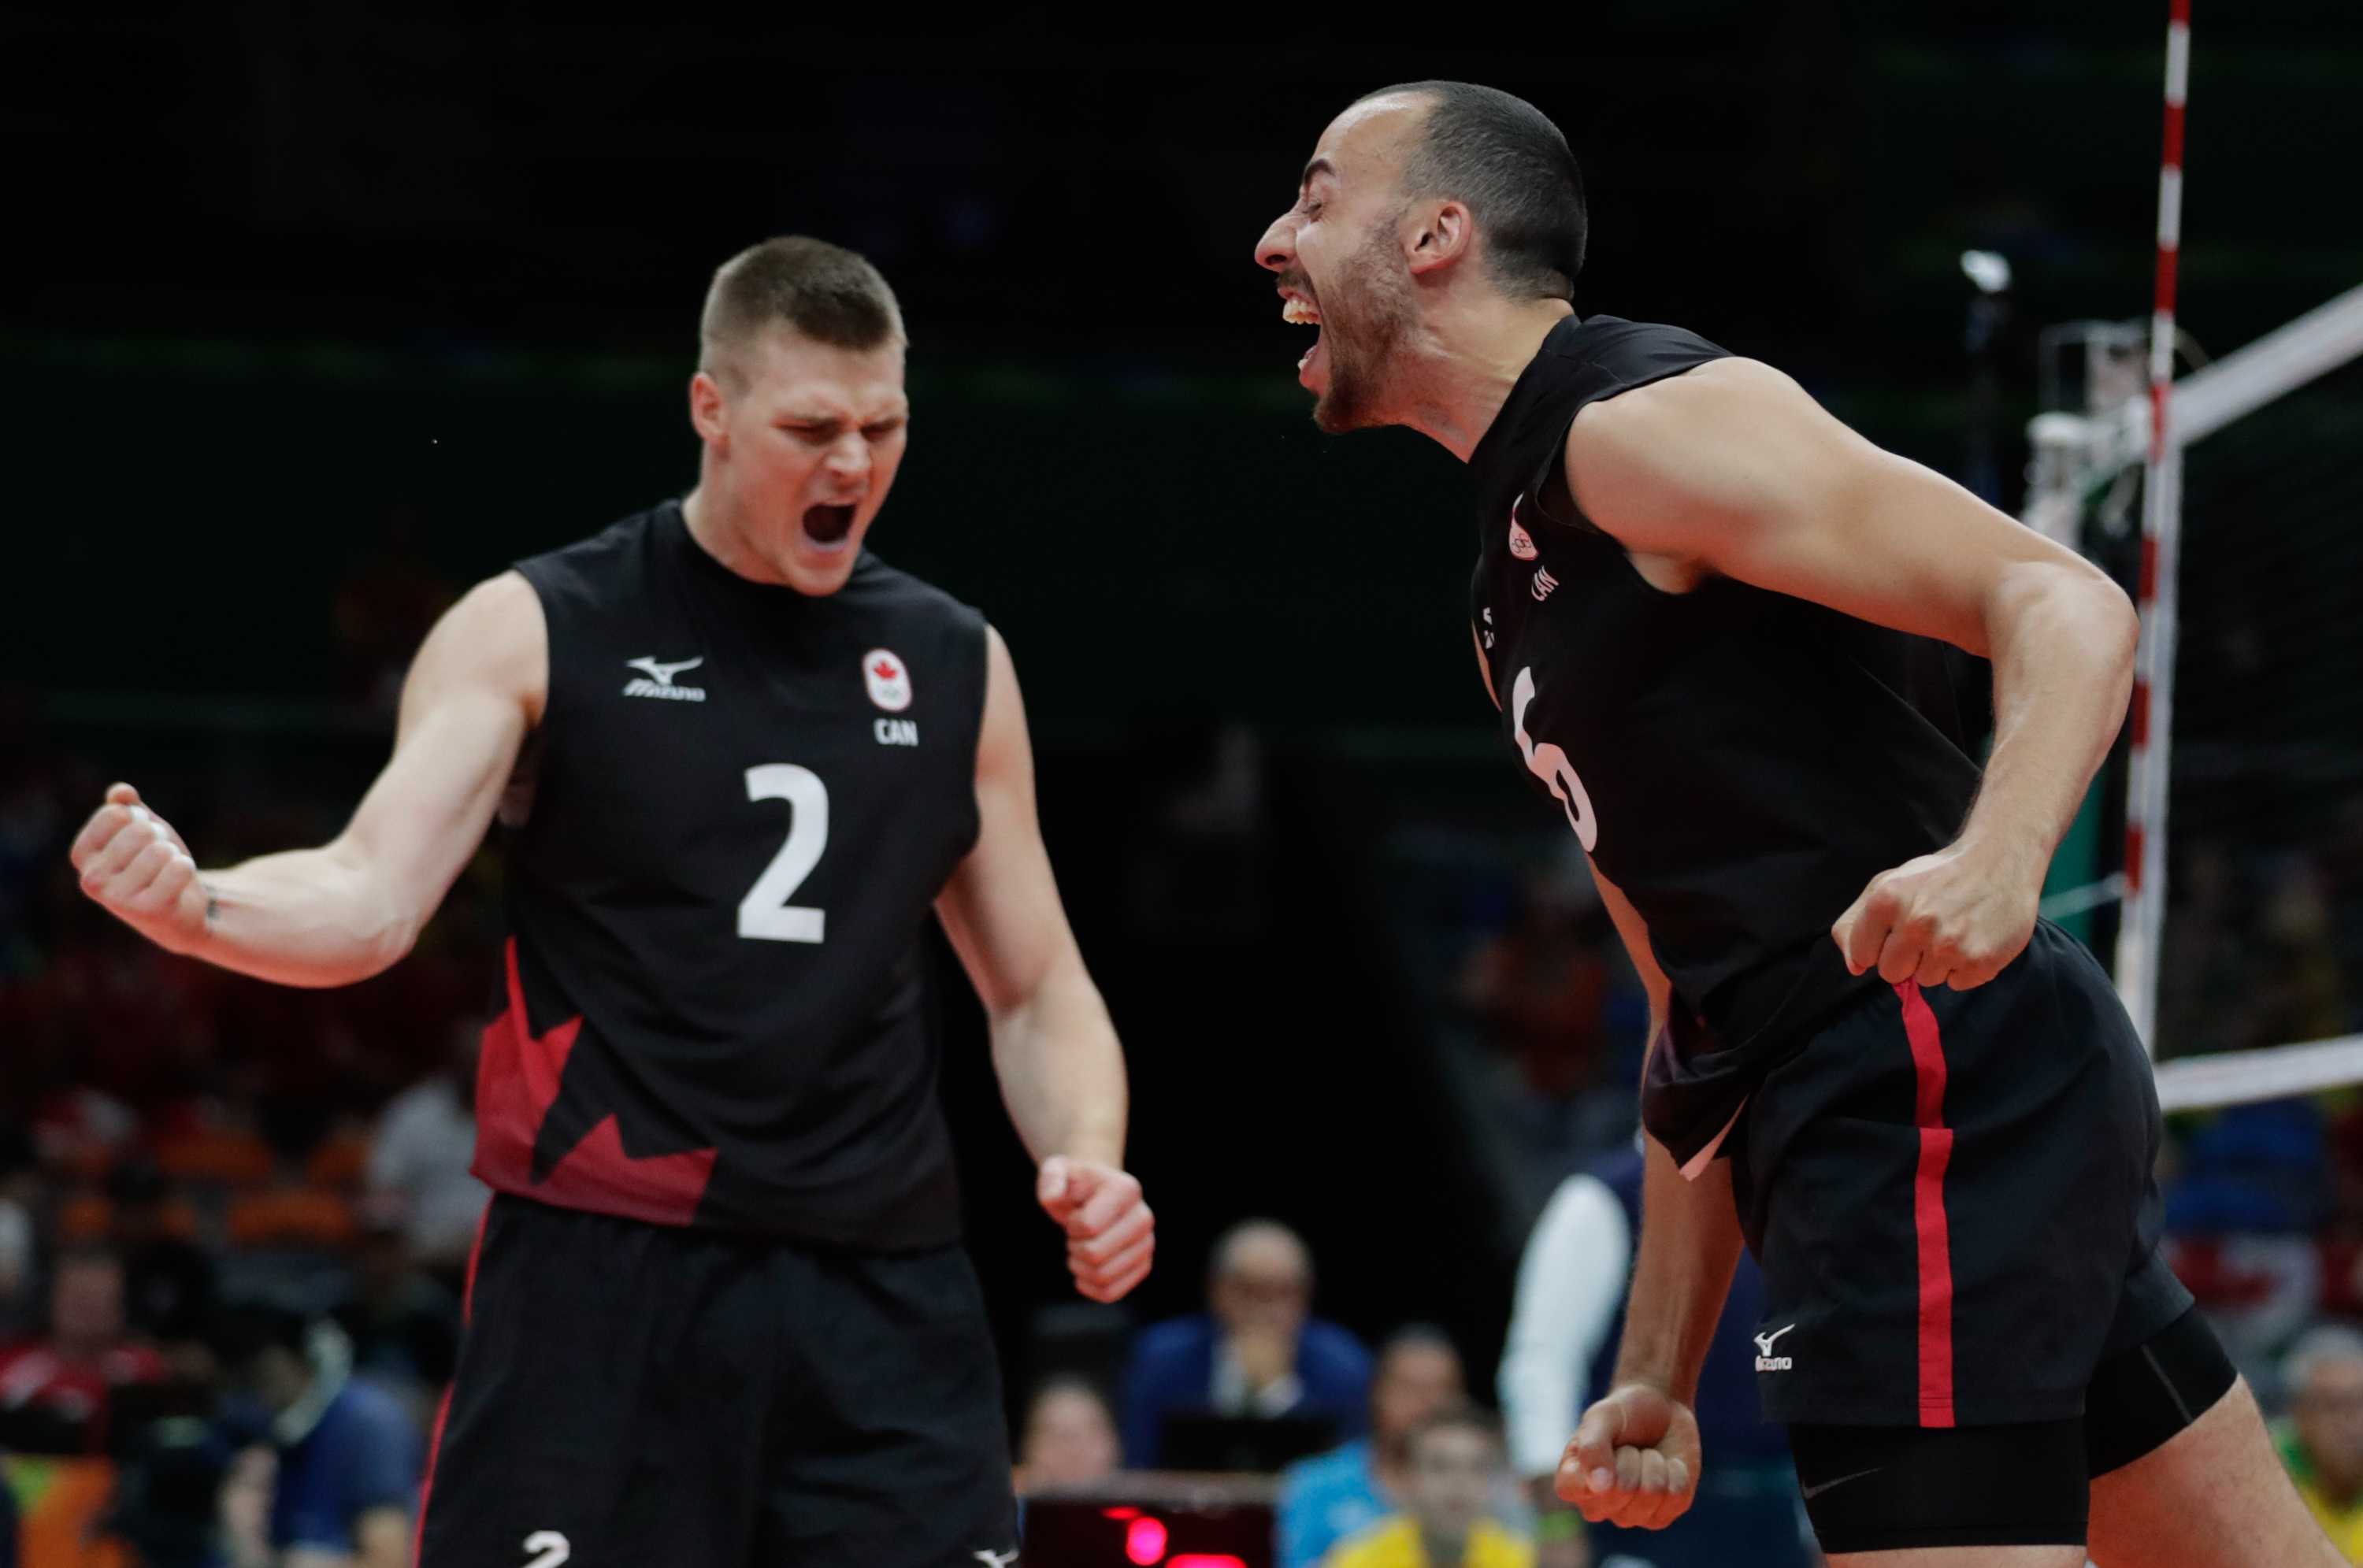 Gord Perrin (left) and Justin Duff during Canada's quarterfinal of the men's volleyball tournament at Rio 2016 (COC/Jason Ransom)